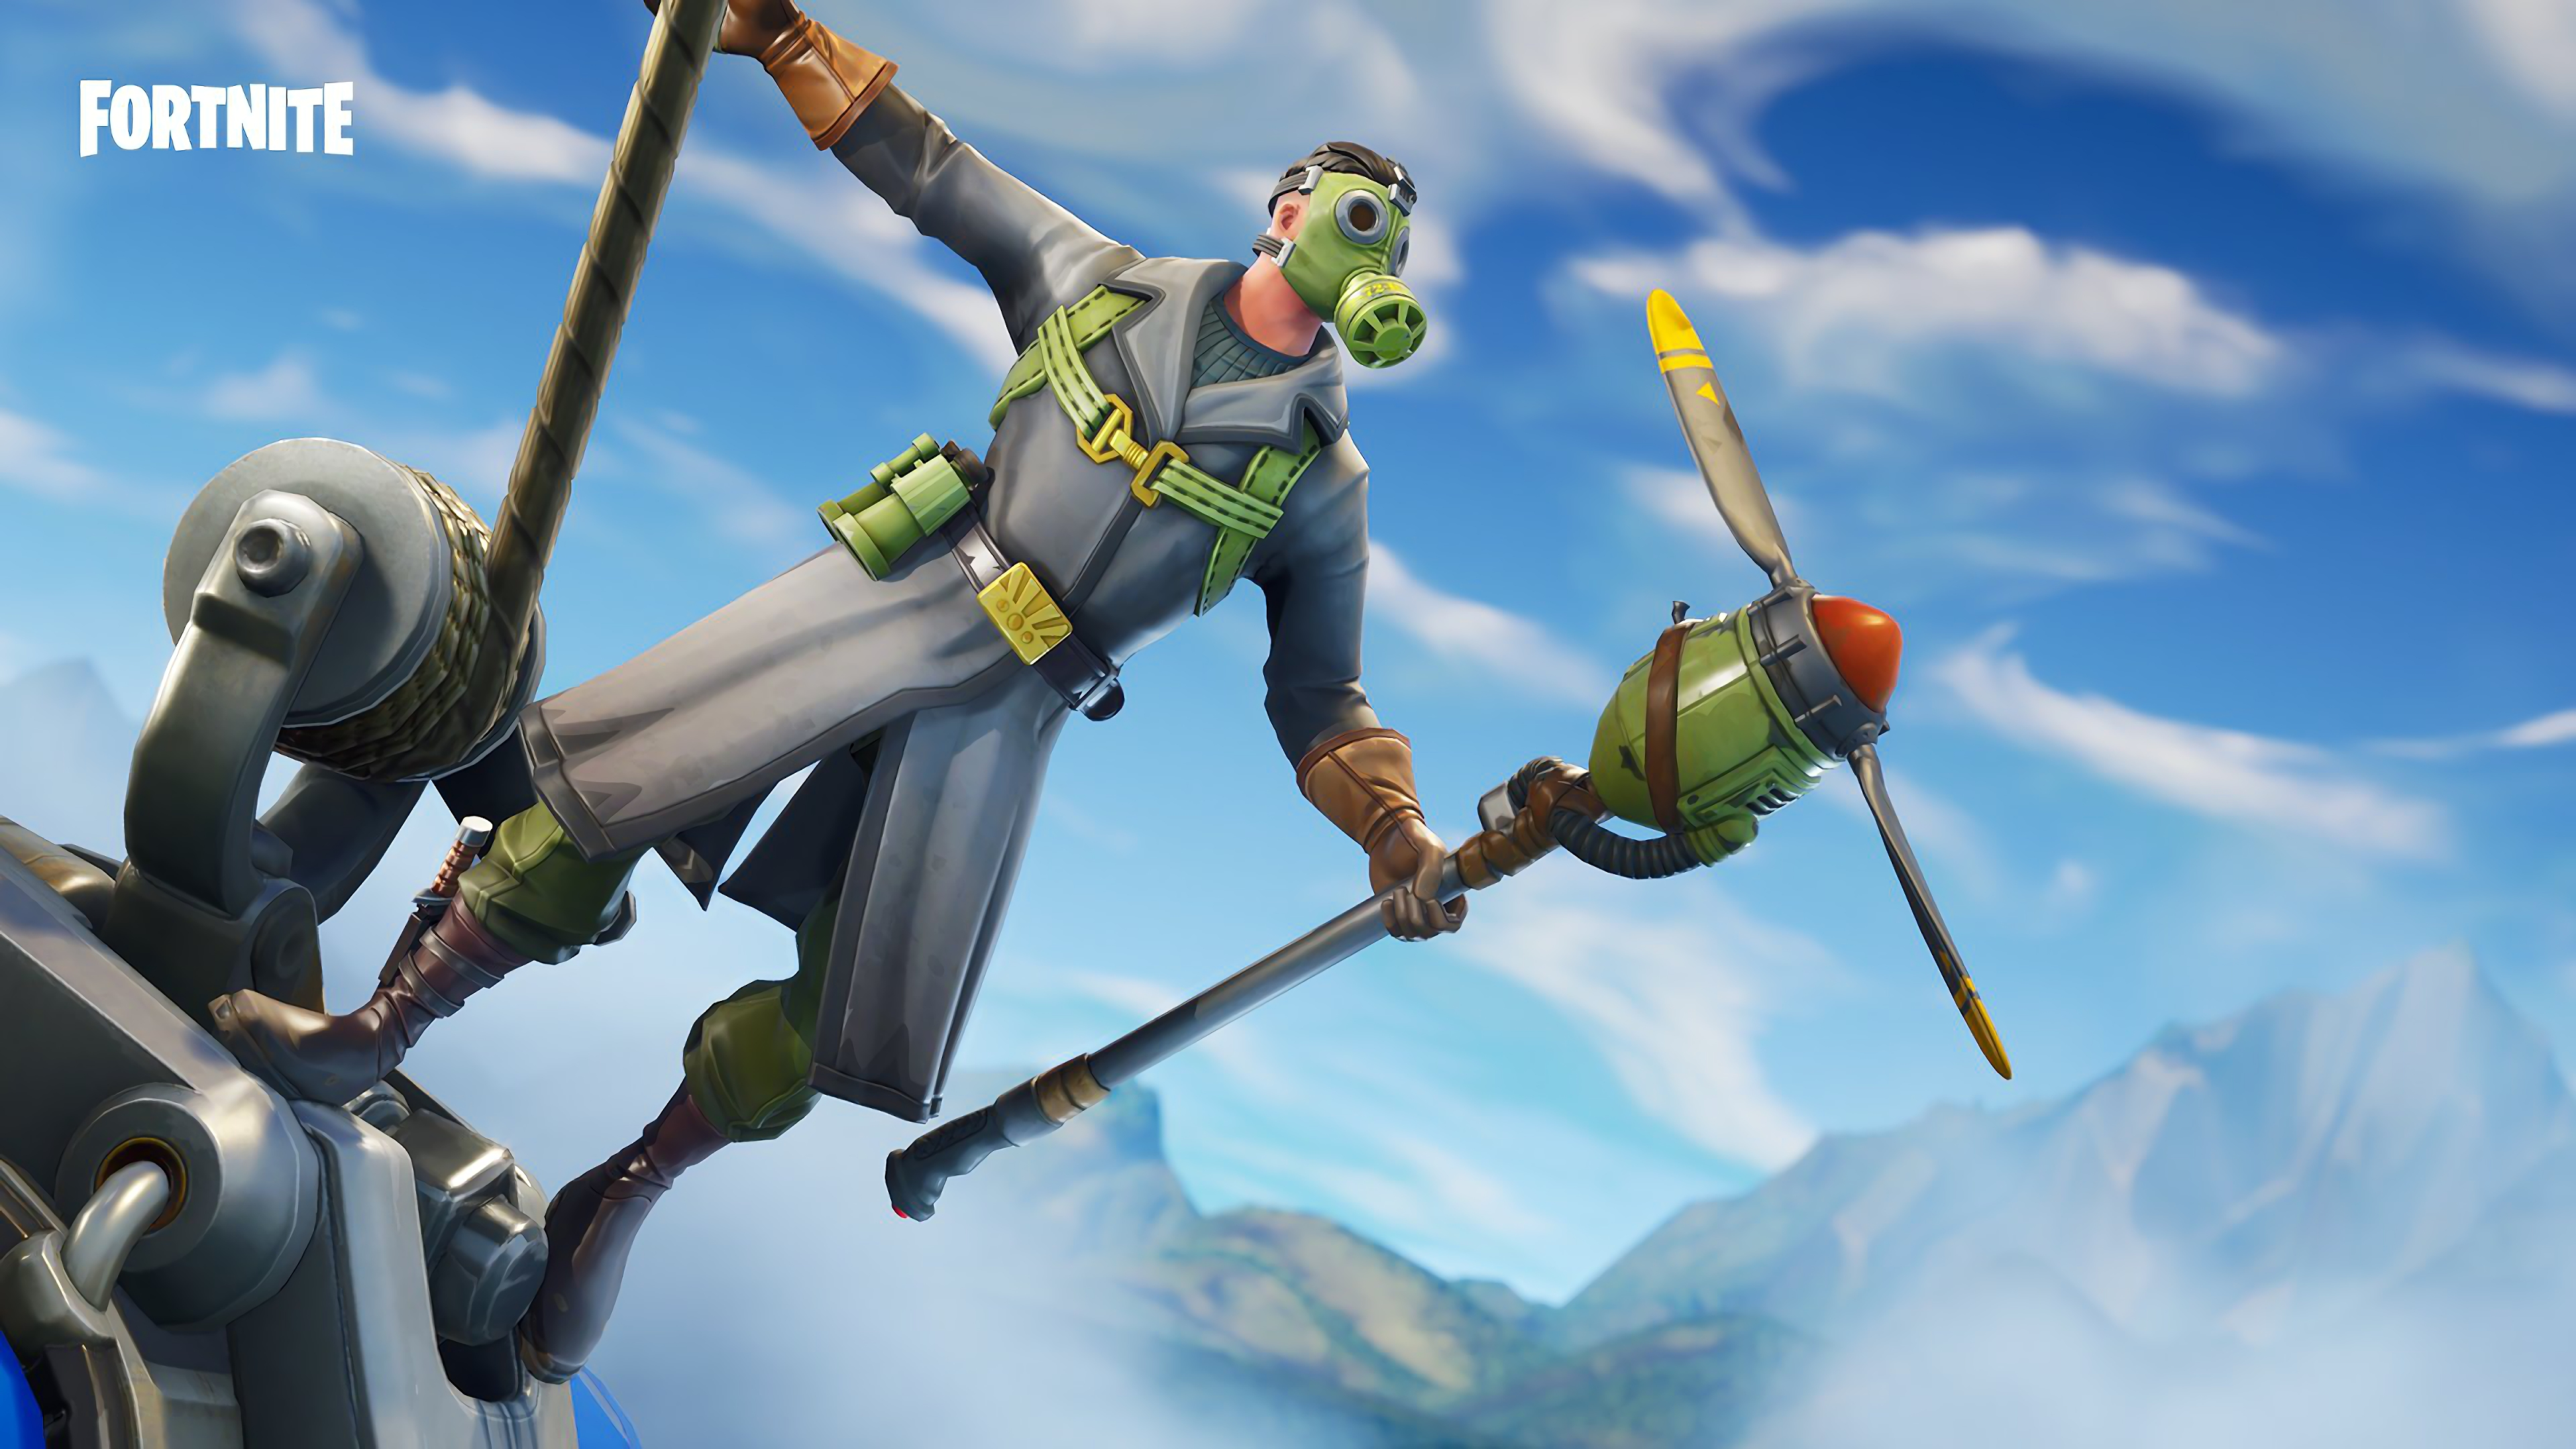 3840x2160 2018 Fortnite Video Game 4k 4k HD 4k Wallpapers, Images, Backgrounds, Photos and Pictures